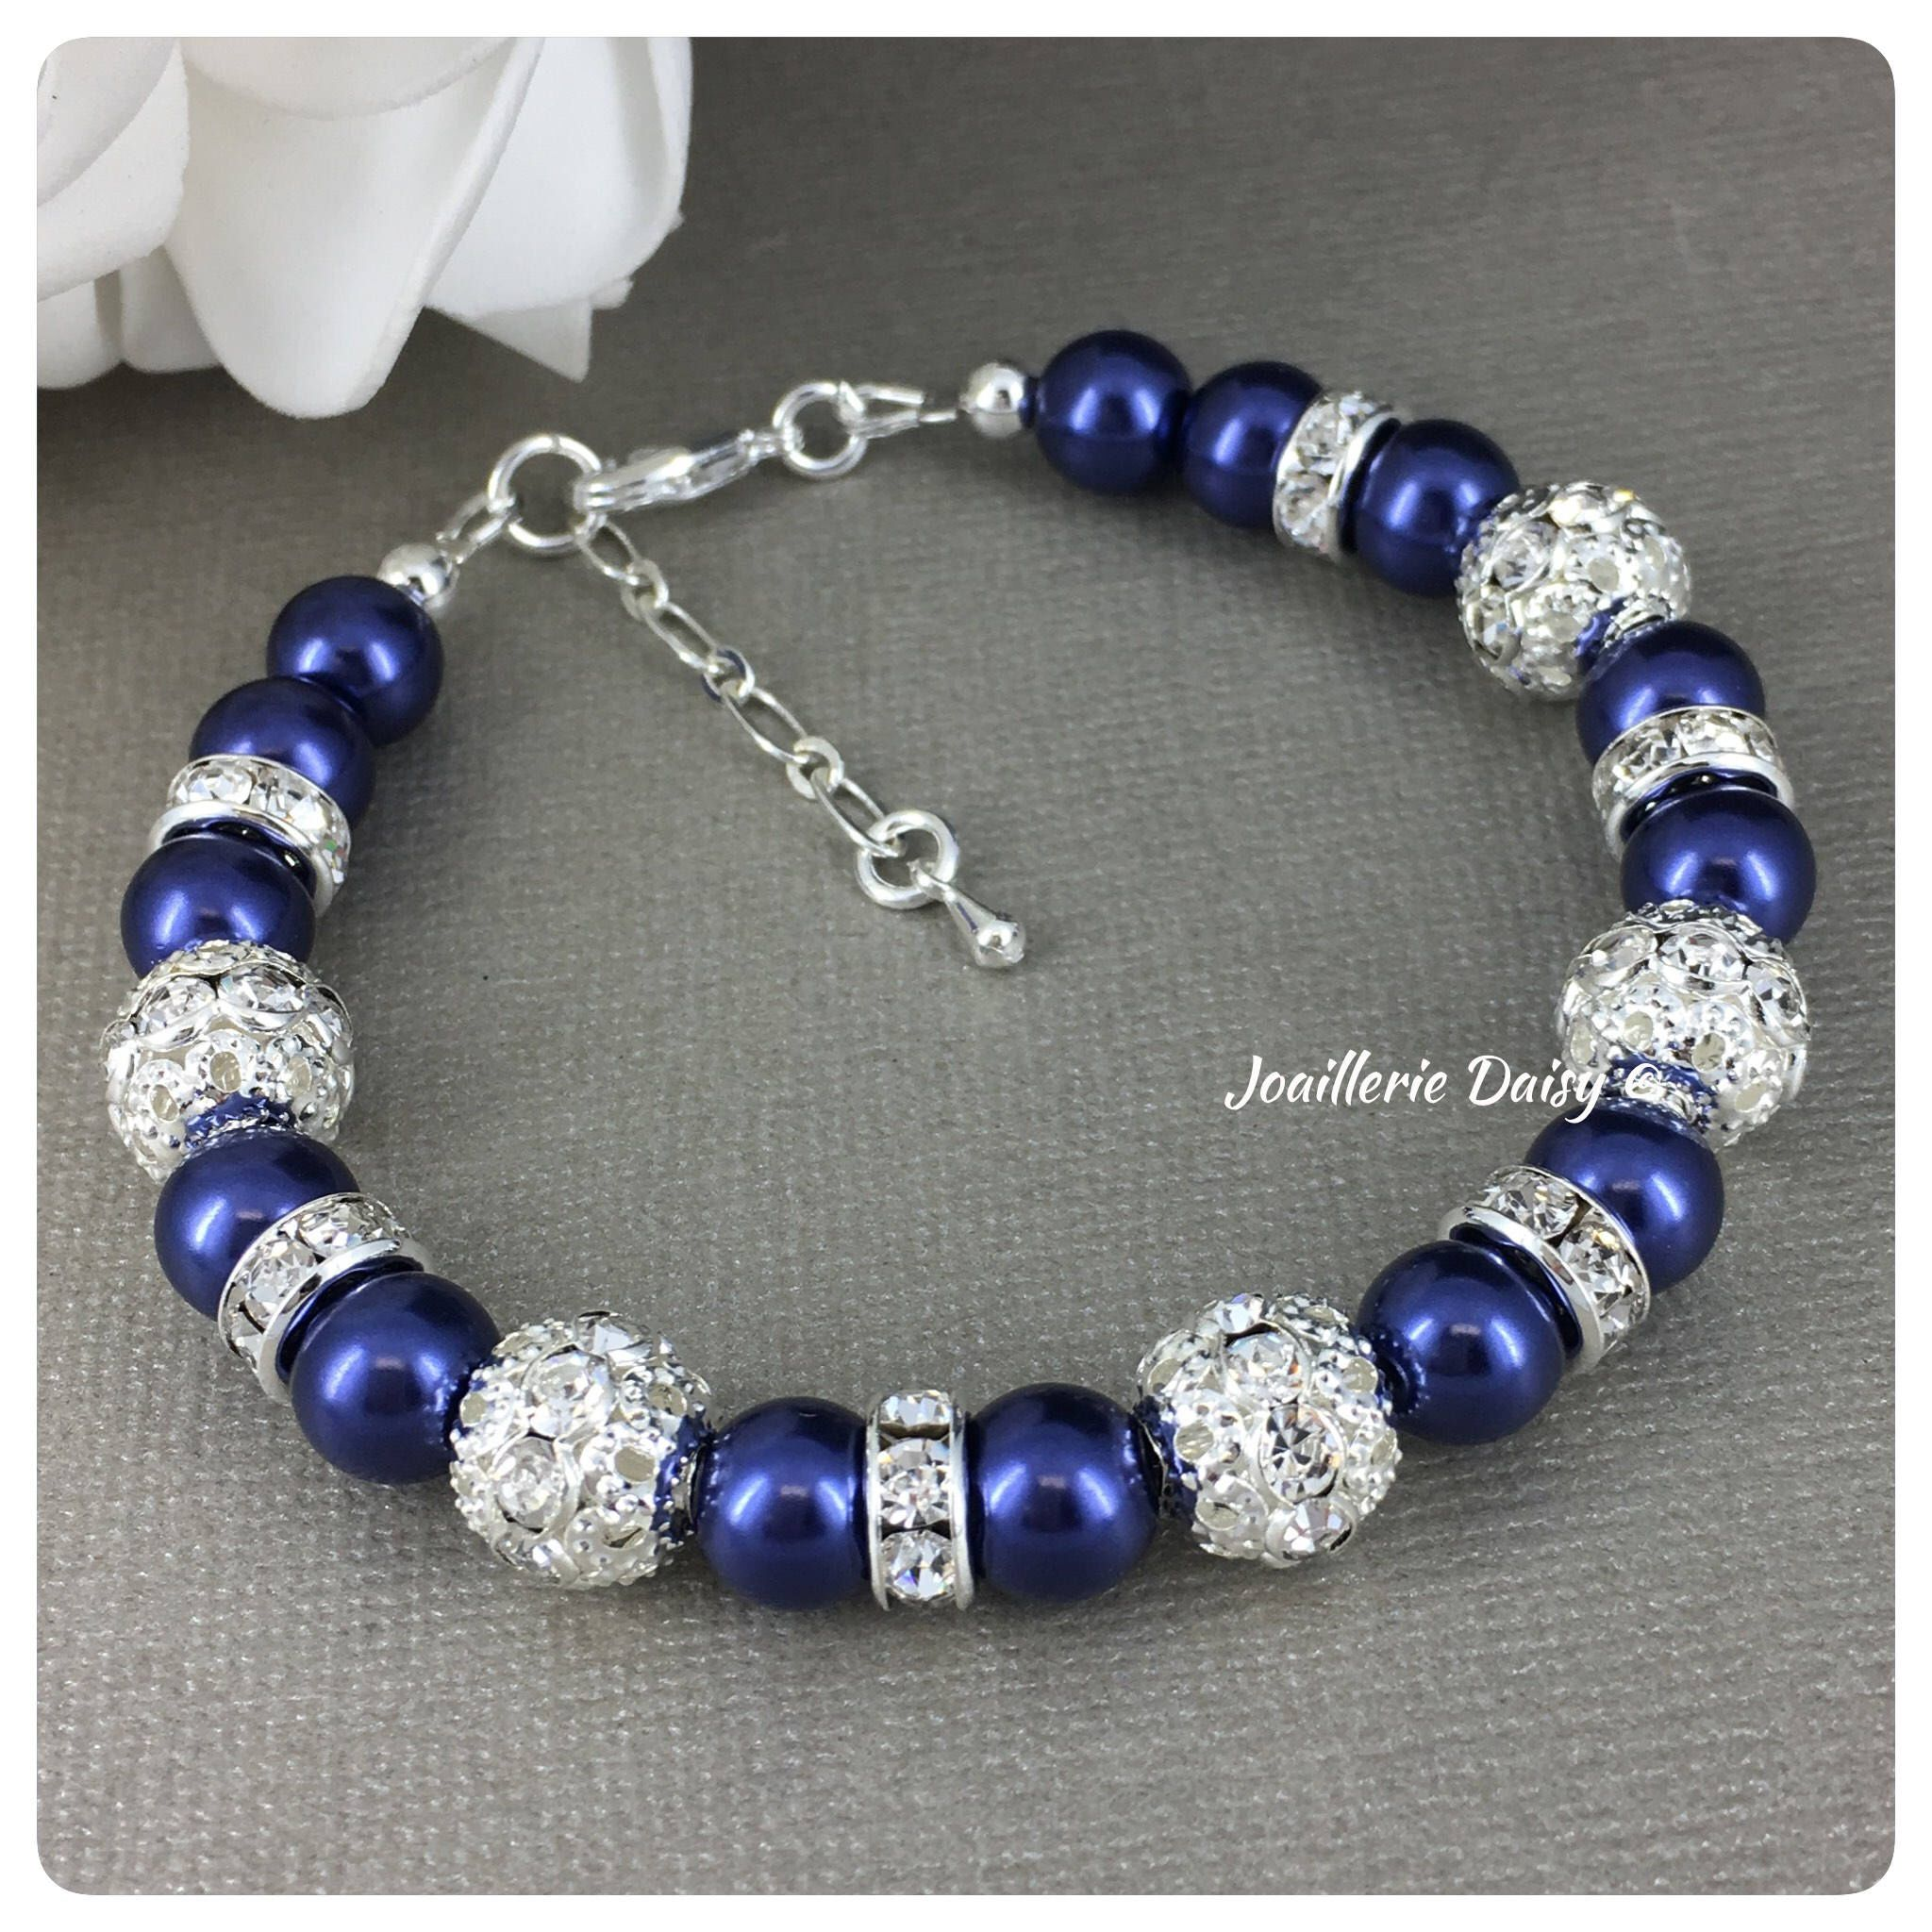 Navy Bracelet Something Blue Navy Blue and Rhinestones Bracelet